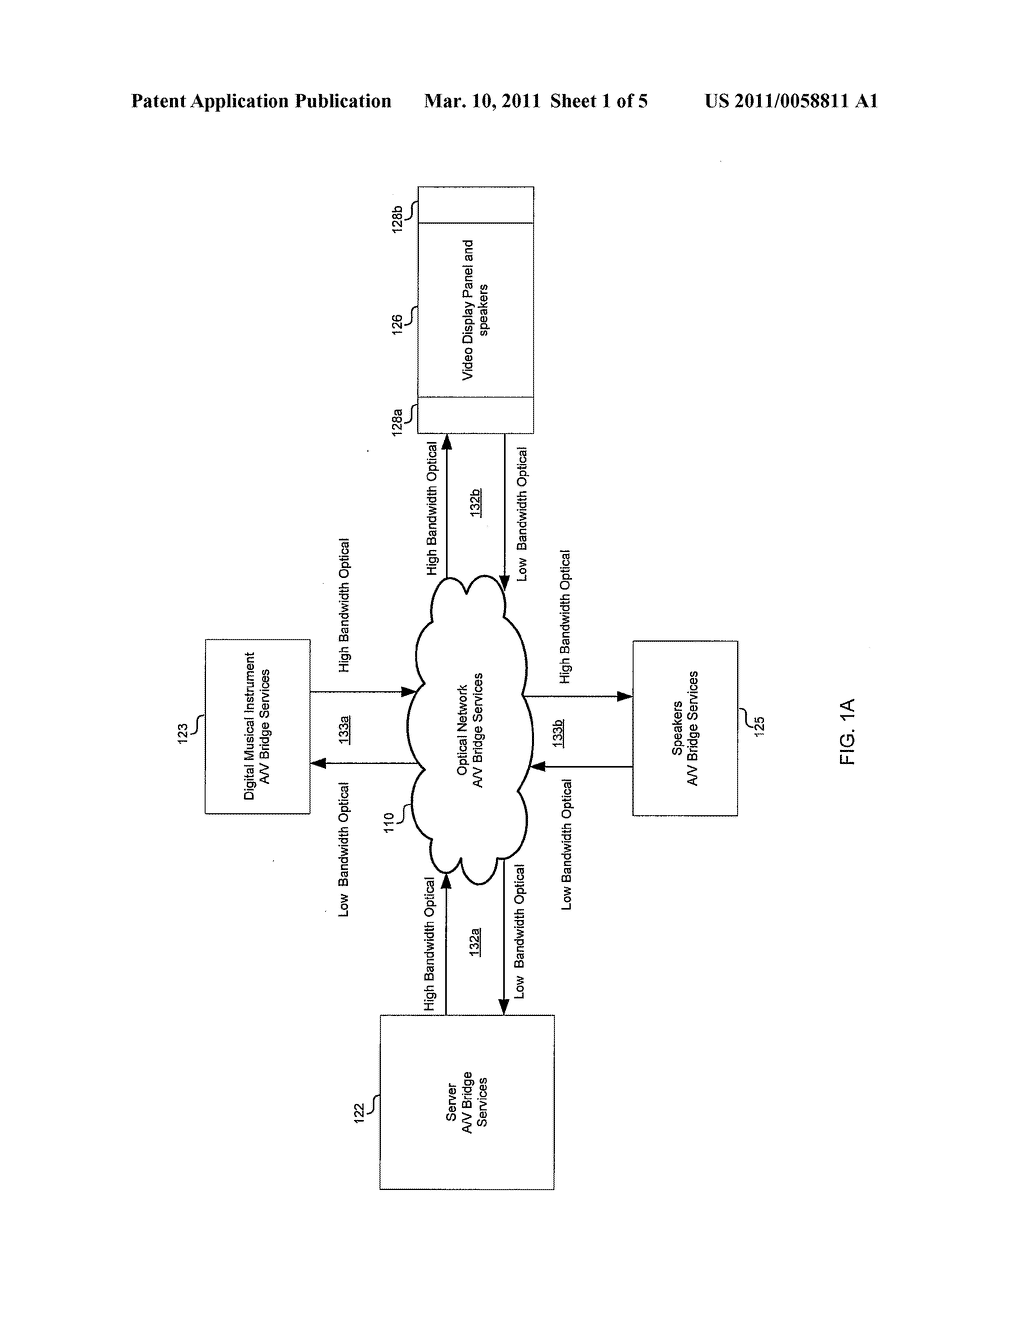 Method And System For An Asymmetric Optical Phy Operation For Ethernet A/V Bridging And Ethernet A/V Bridging Extensions - diagram, schematic, and image 02